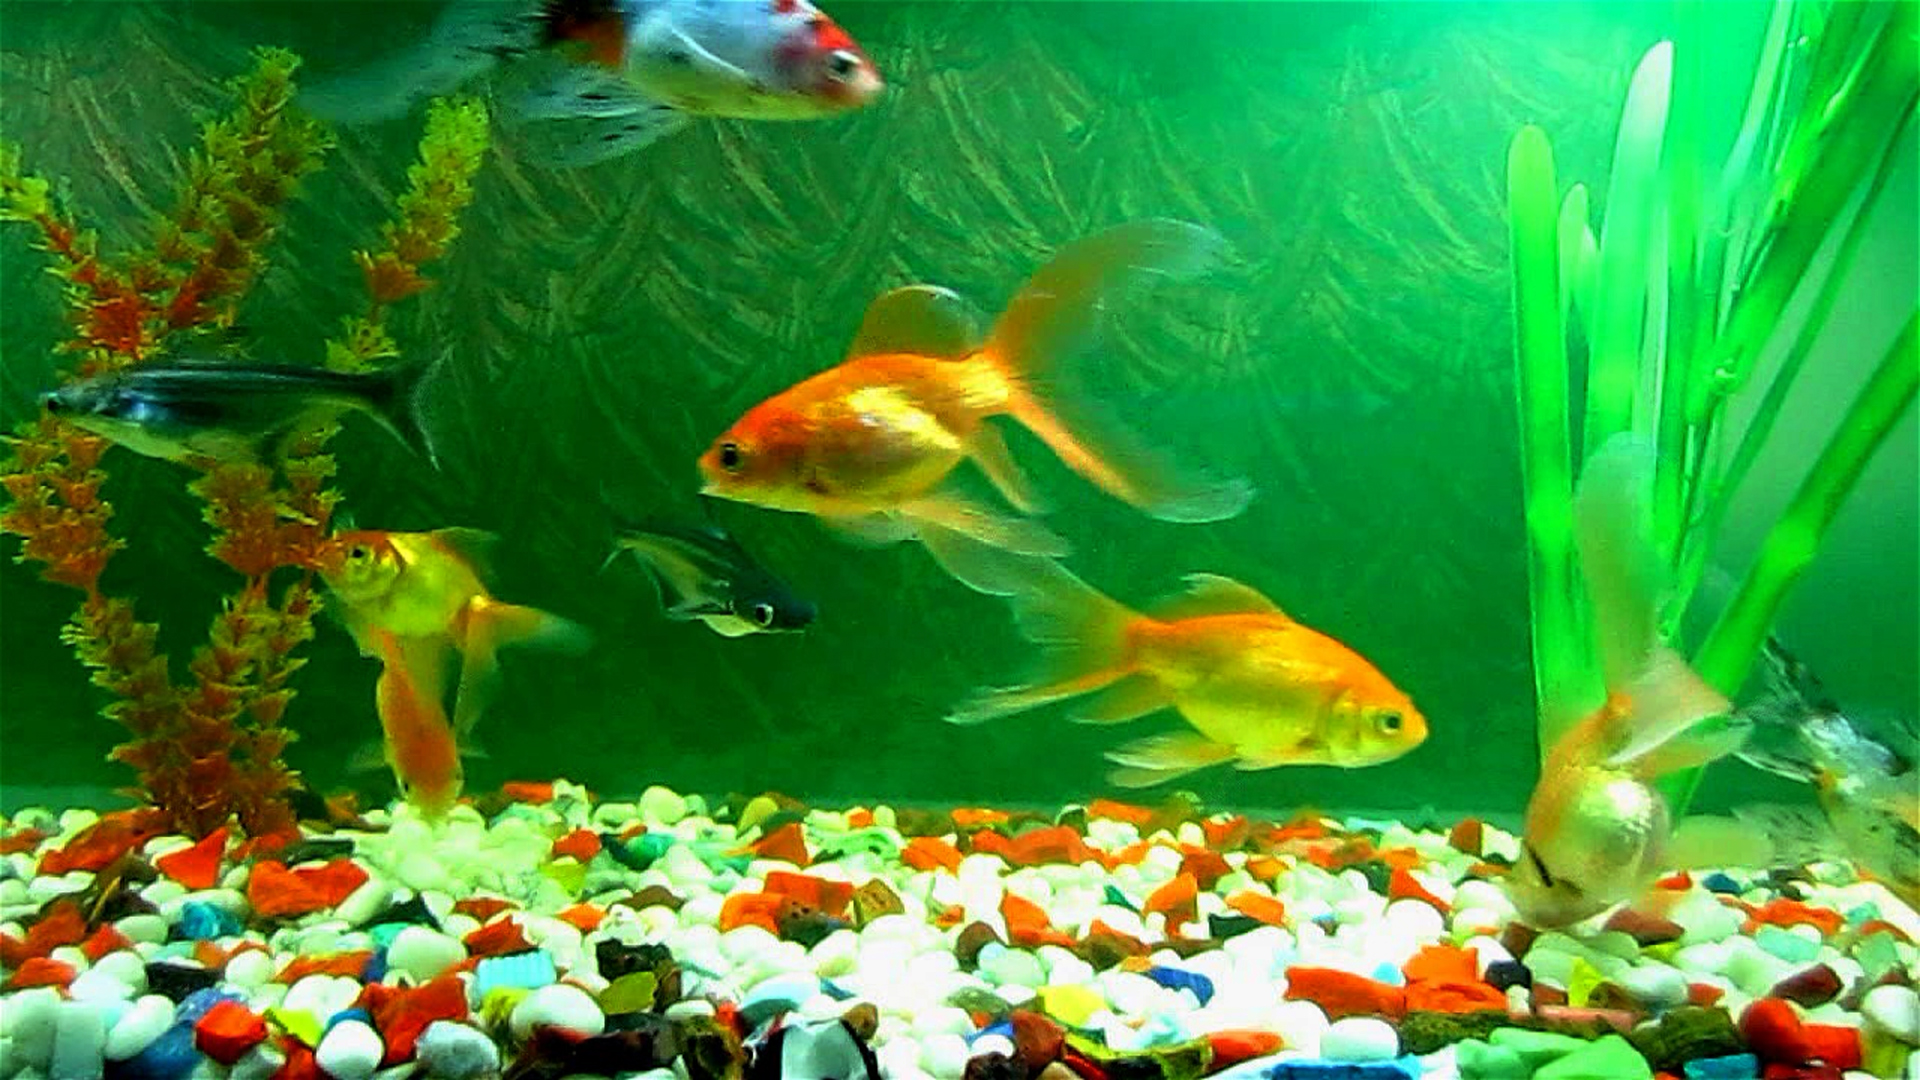 K Anime Wallpaper Download Aquarium Fish Wallpapers Hd Gallery